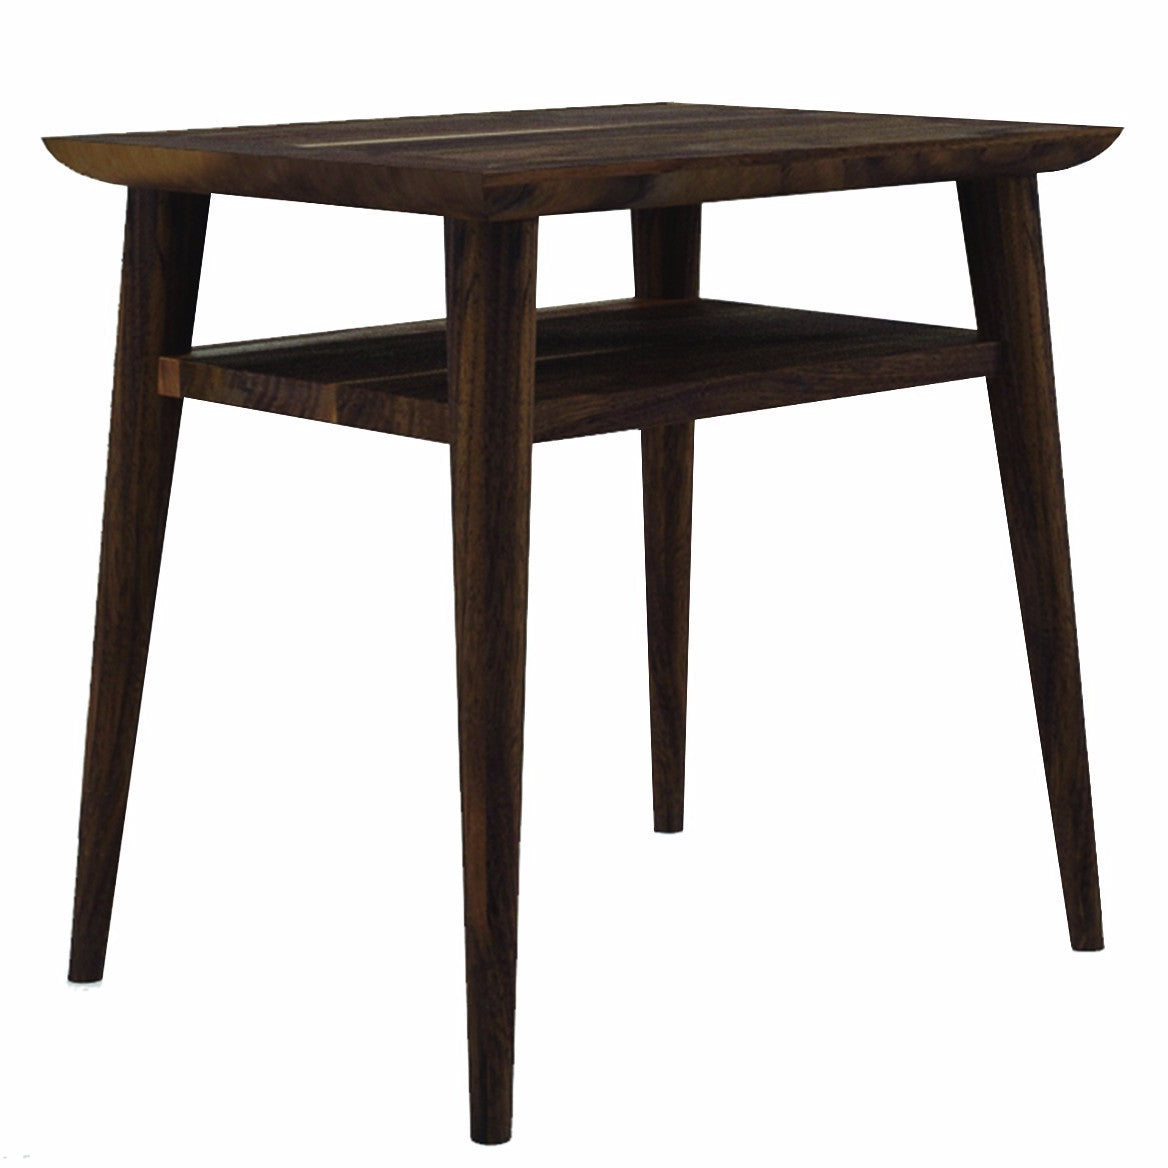 Vintage Side Table Nightstand P13524 by Ion Design Luxe Wood